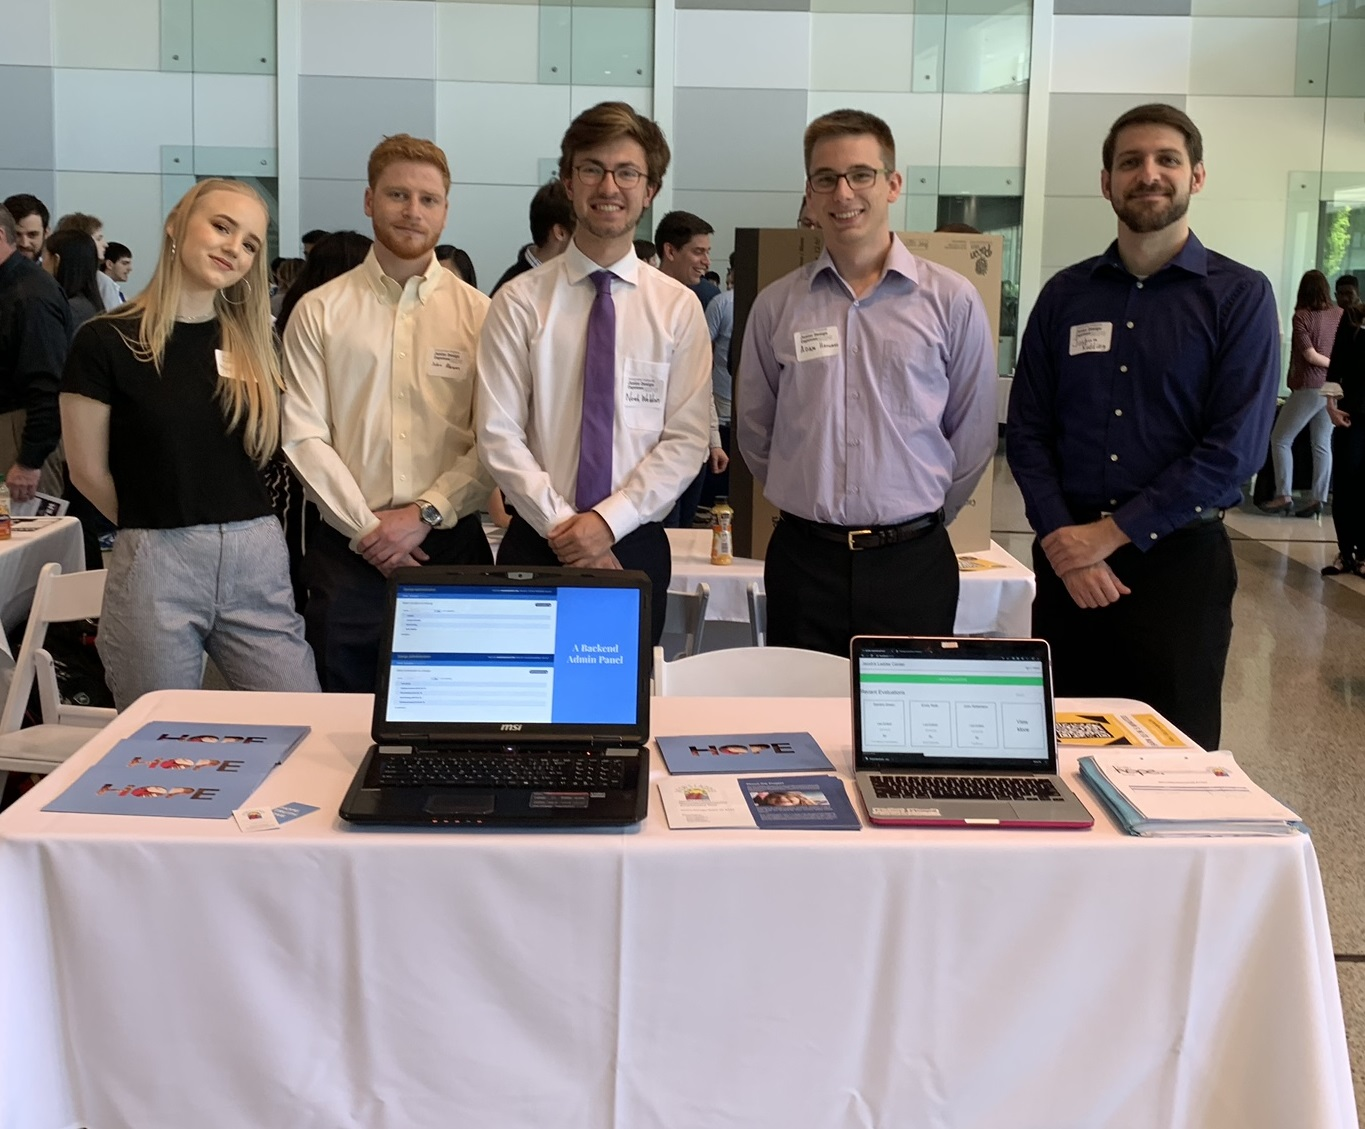 Team 8332 showcases the online evaluation tool they developed for their client, Jacob's Ladder Neurodevelopmental School and Therapy Center. Their table includes two laptops demonstrating the software and handouts describing how the app works.